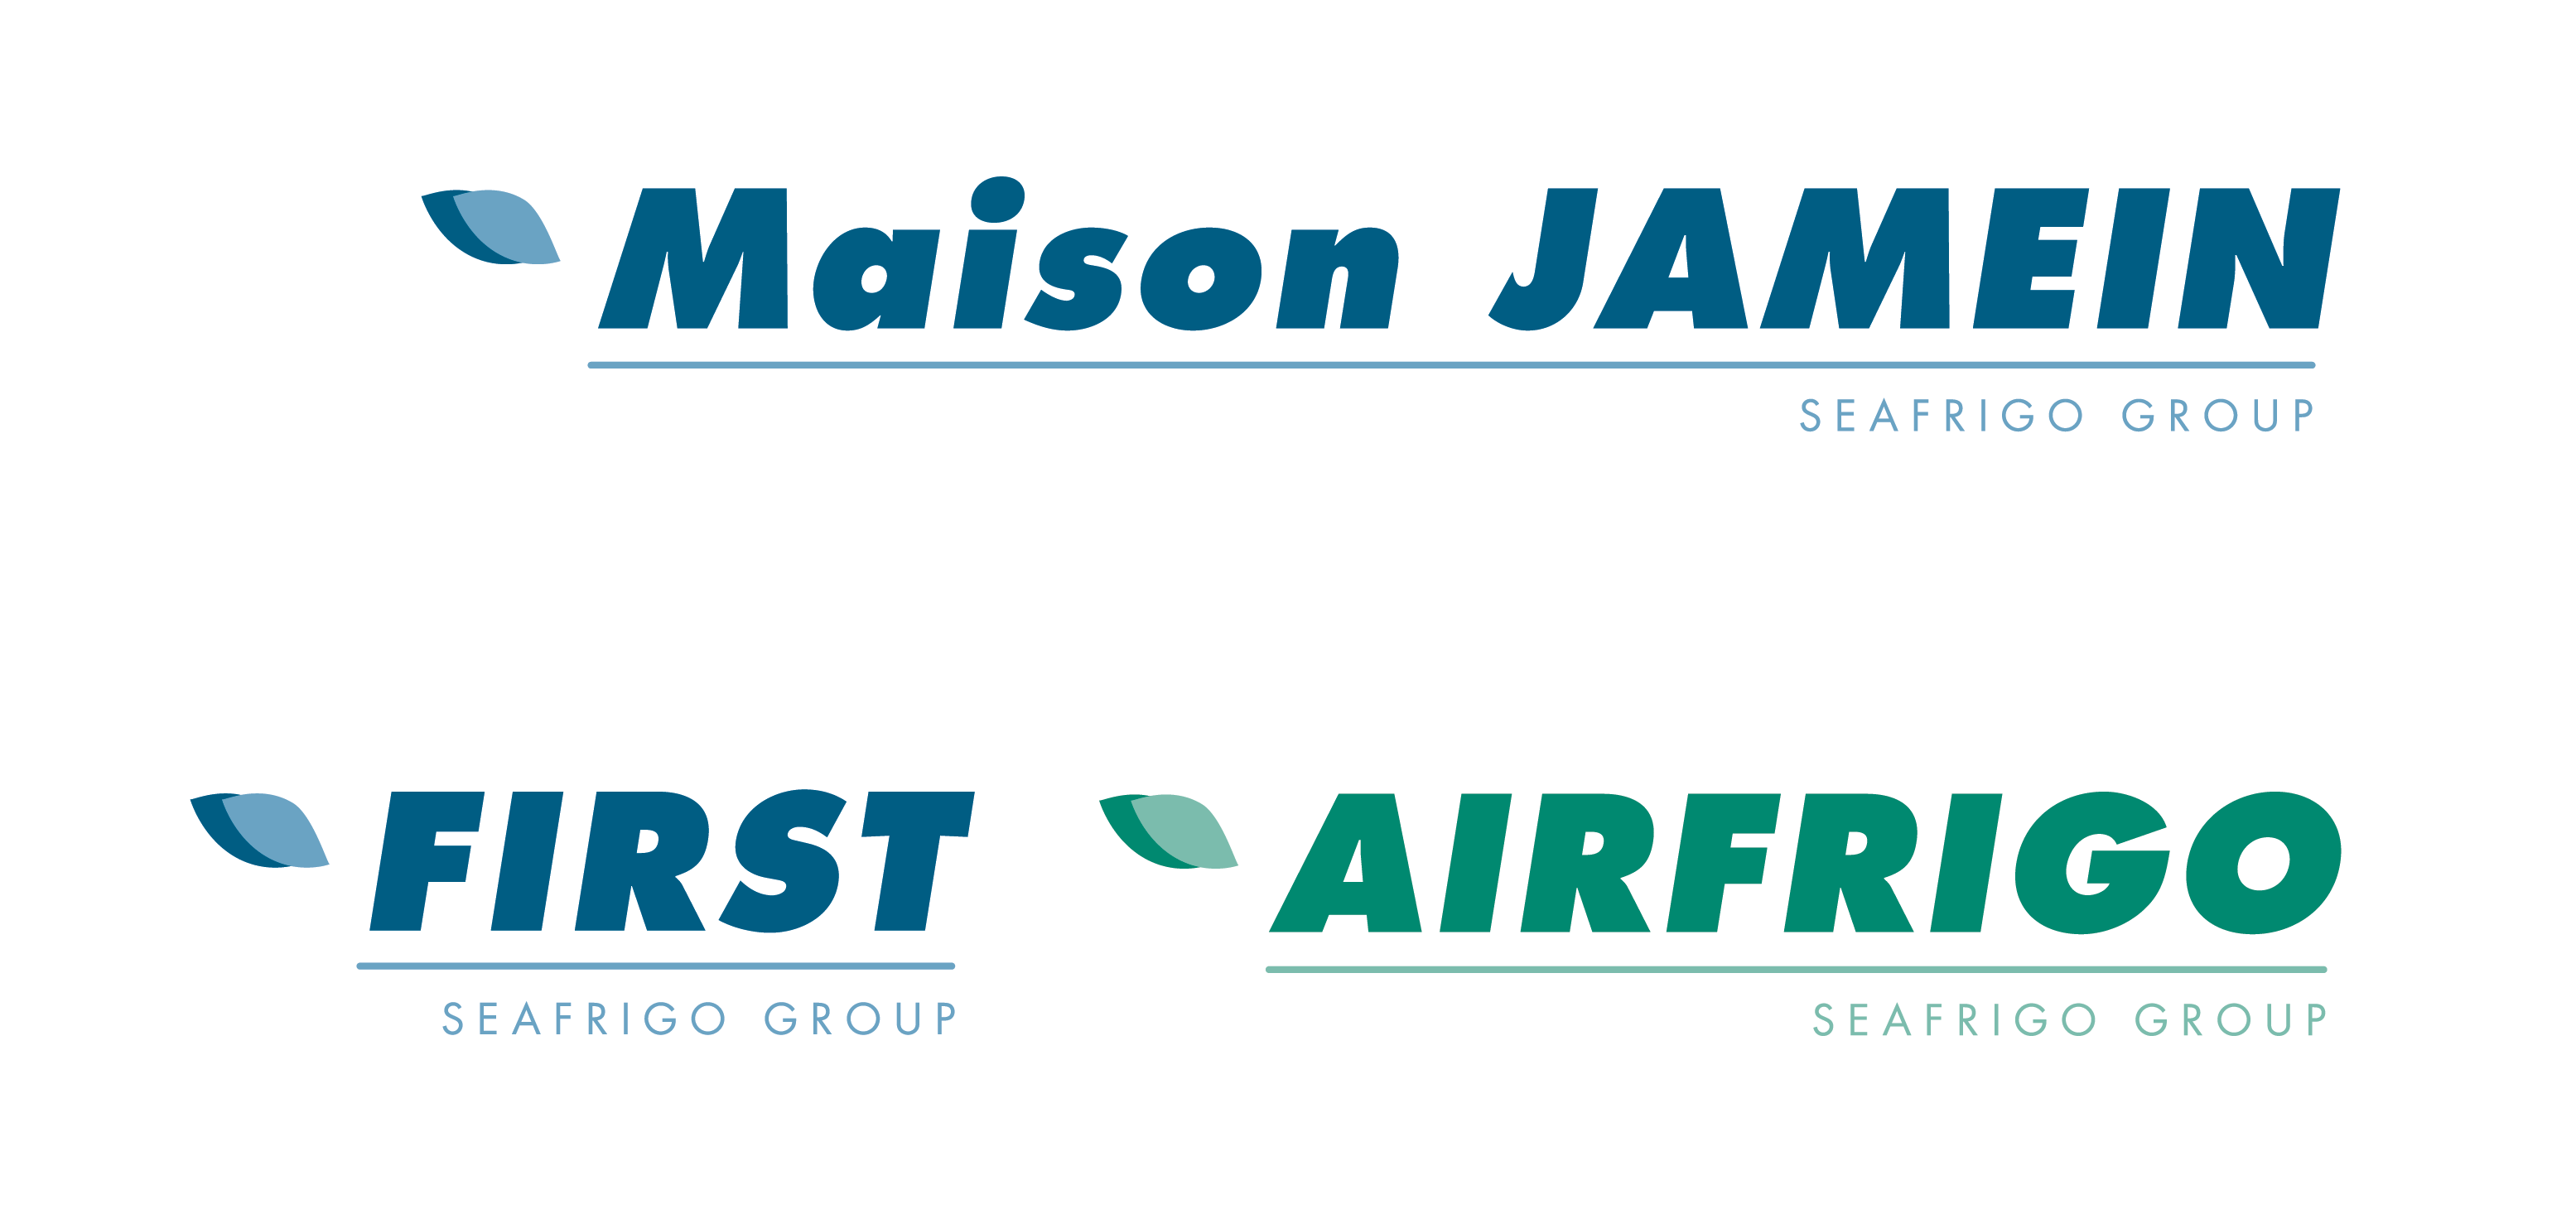 MAISON JAMEIN FIRST AIRFRIGO